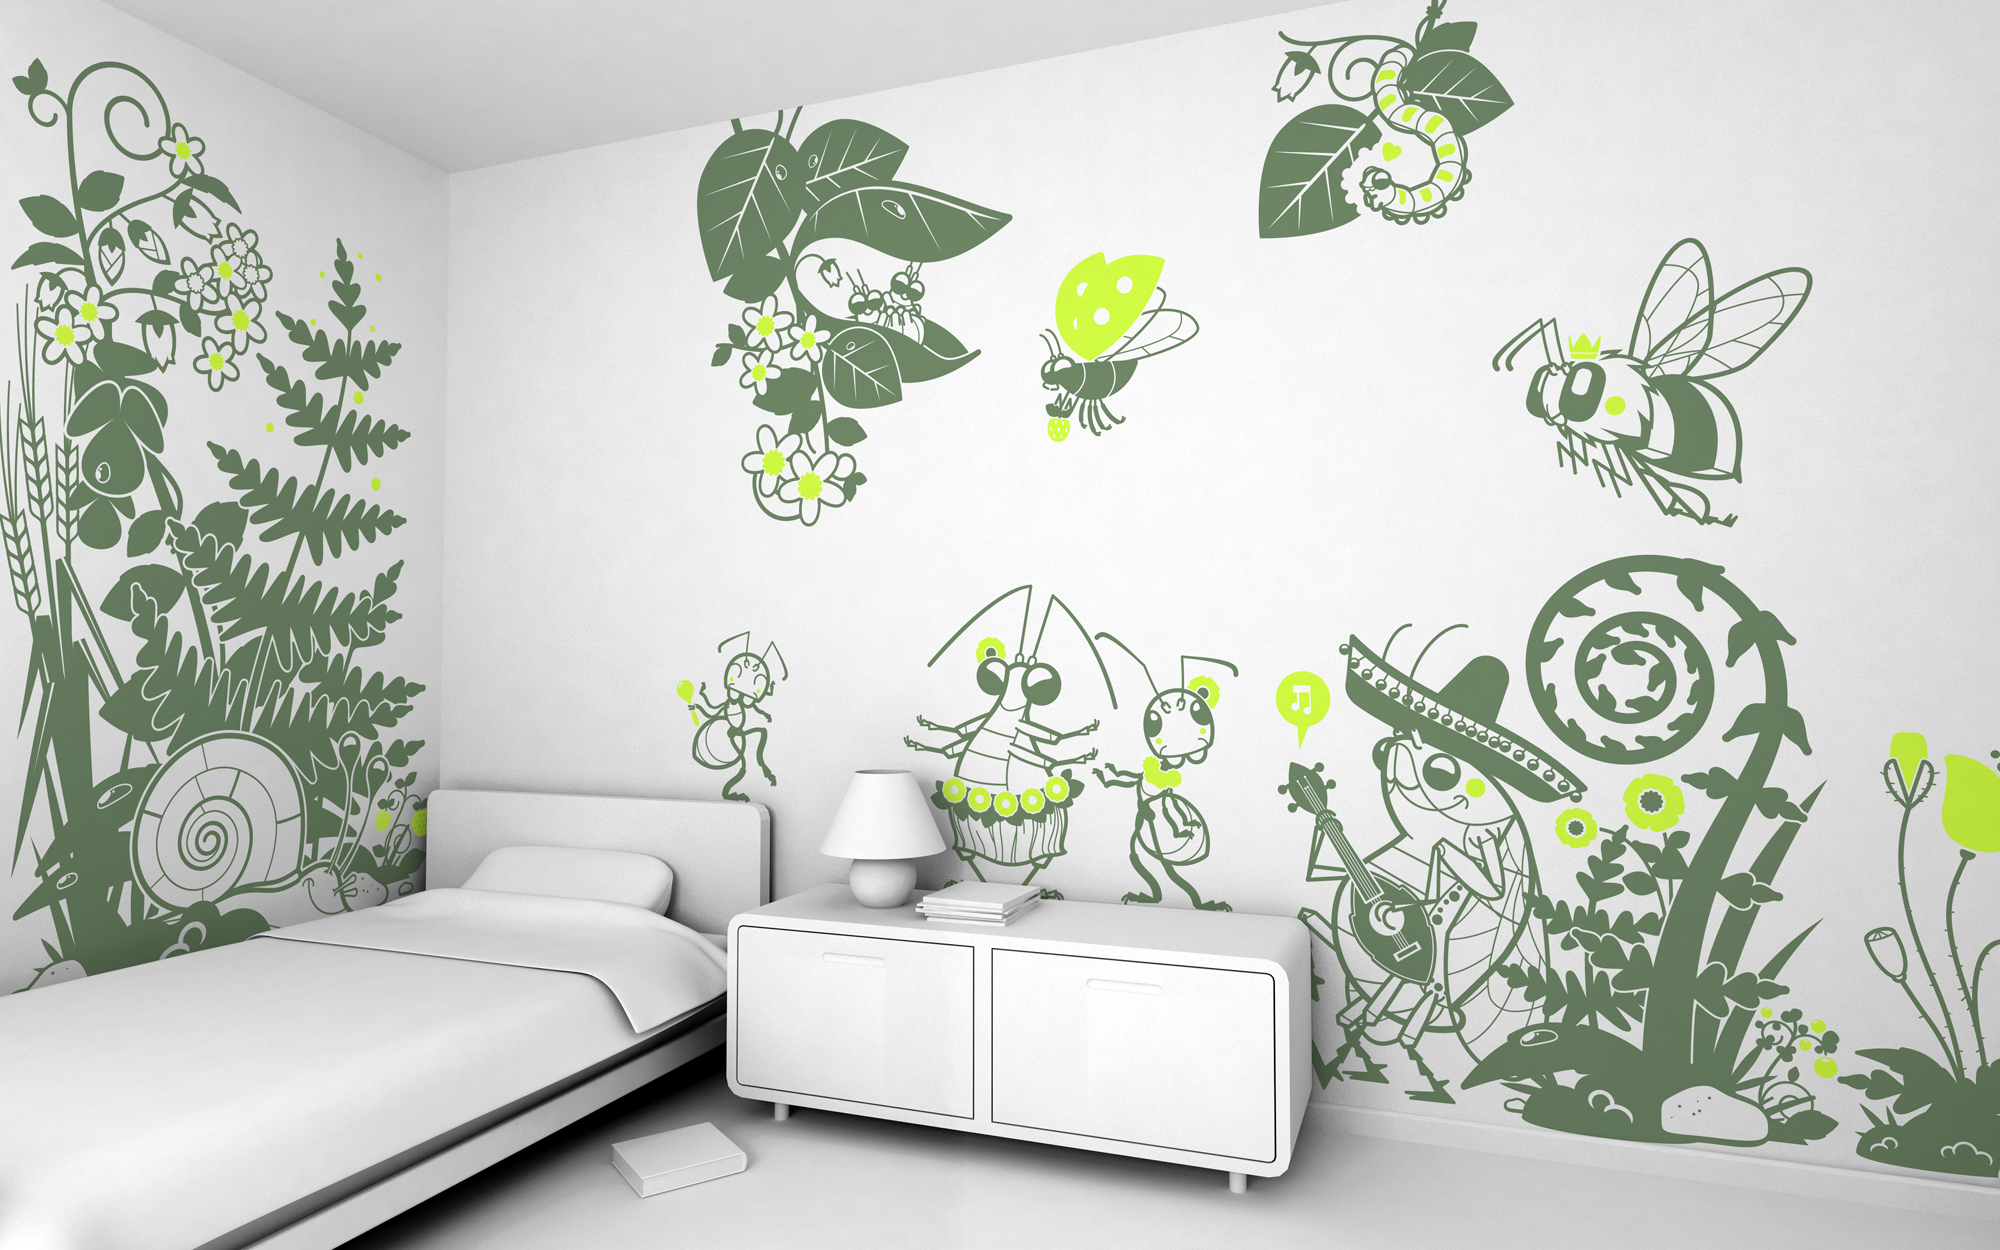 giant kids wall decals by e glue studio at coroflot com h 2 favorite qview full size